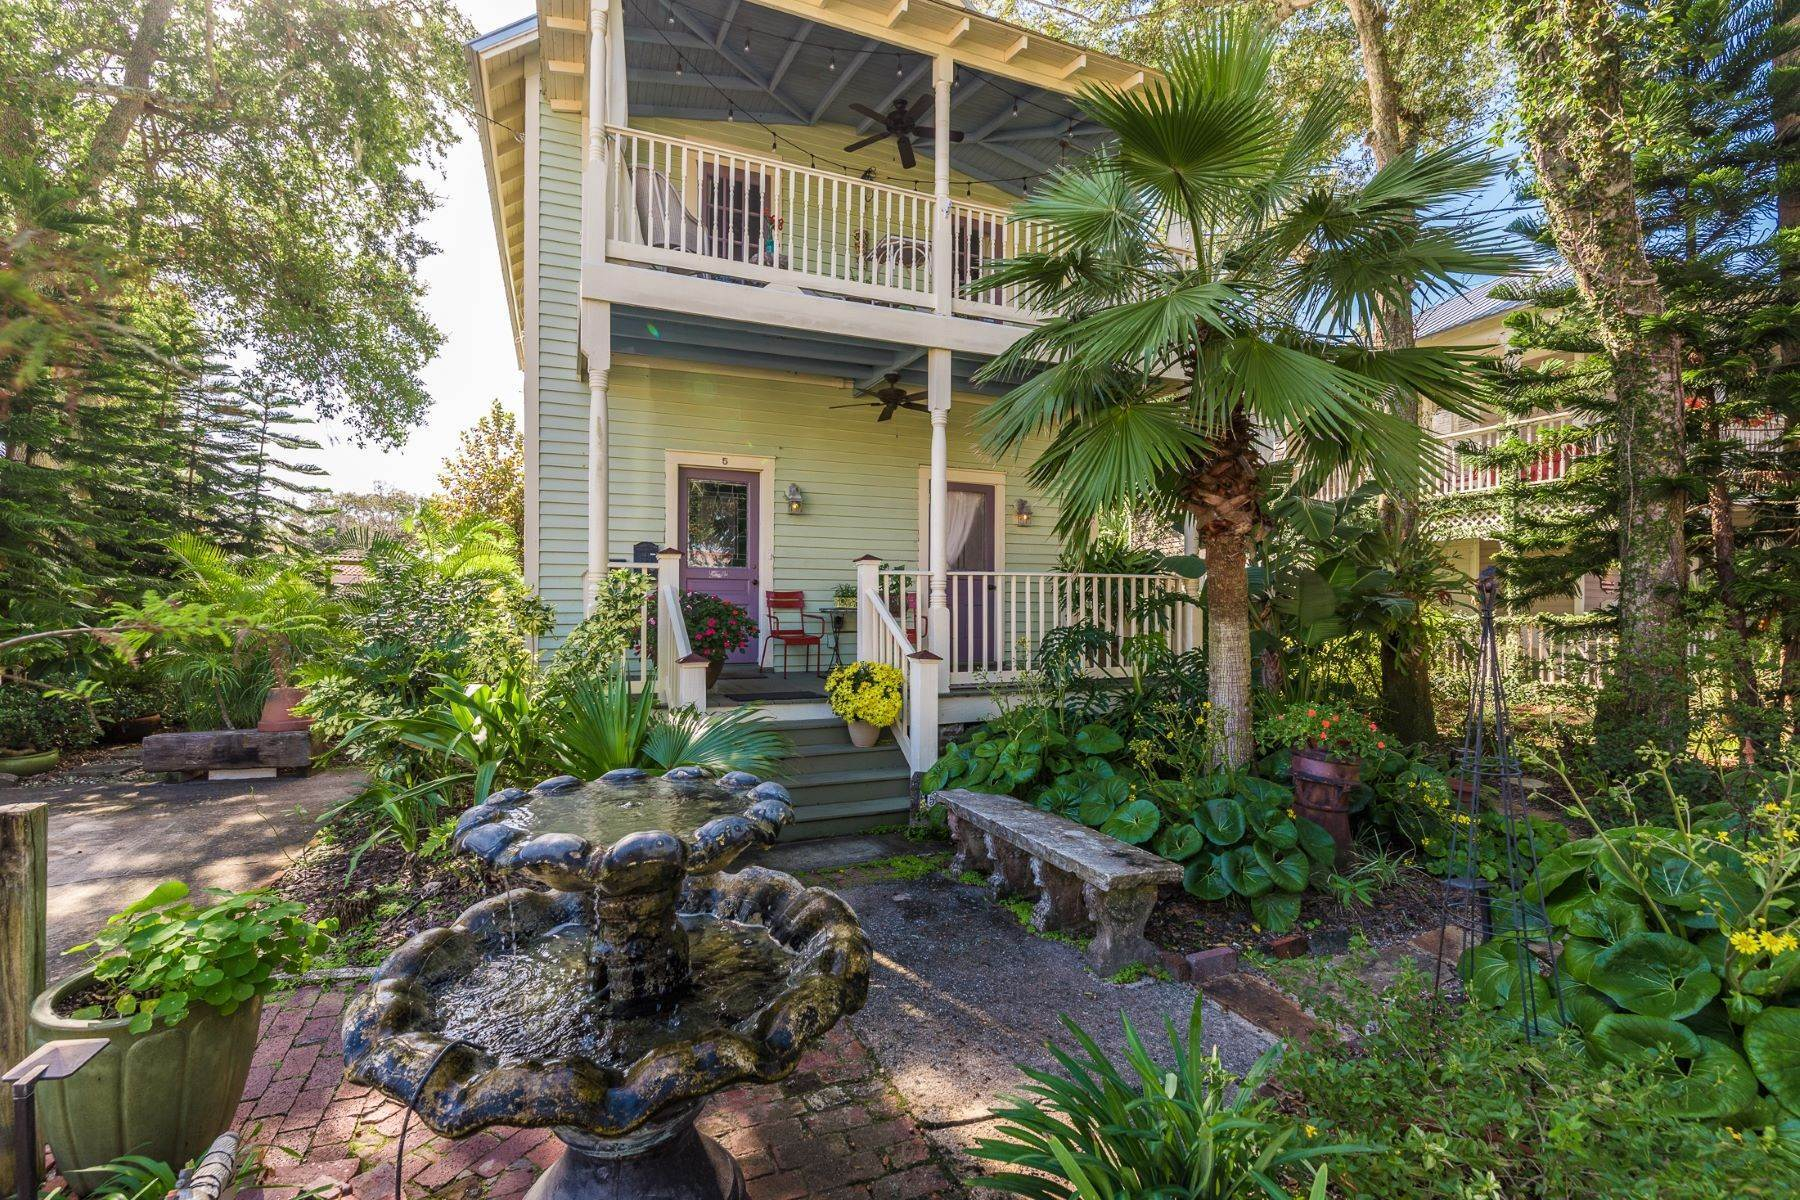 Property for Sale at 5 Cincinnati Avenue, St. Augustine, FL 32084 5 Cincinnati Avenue St. Augustine, Florida 32084 United States